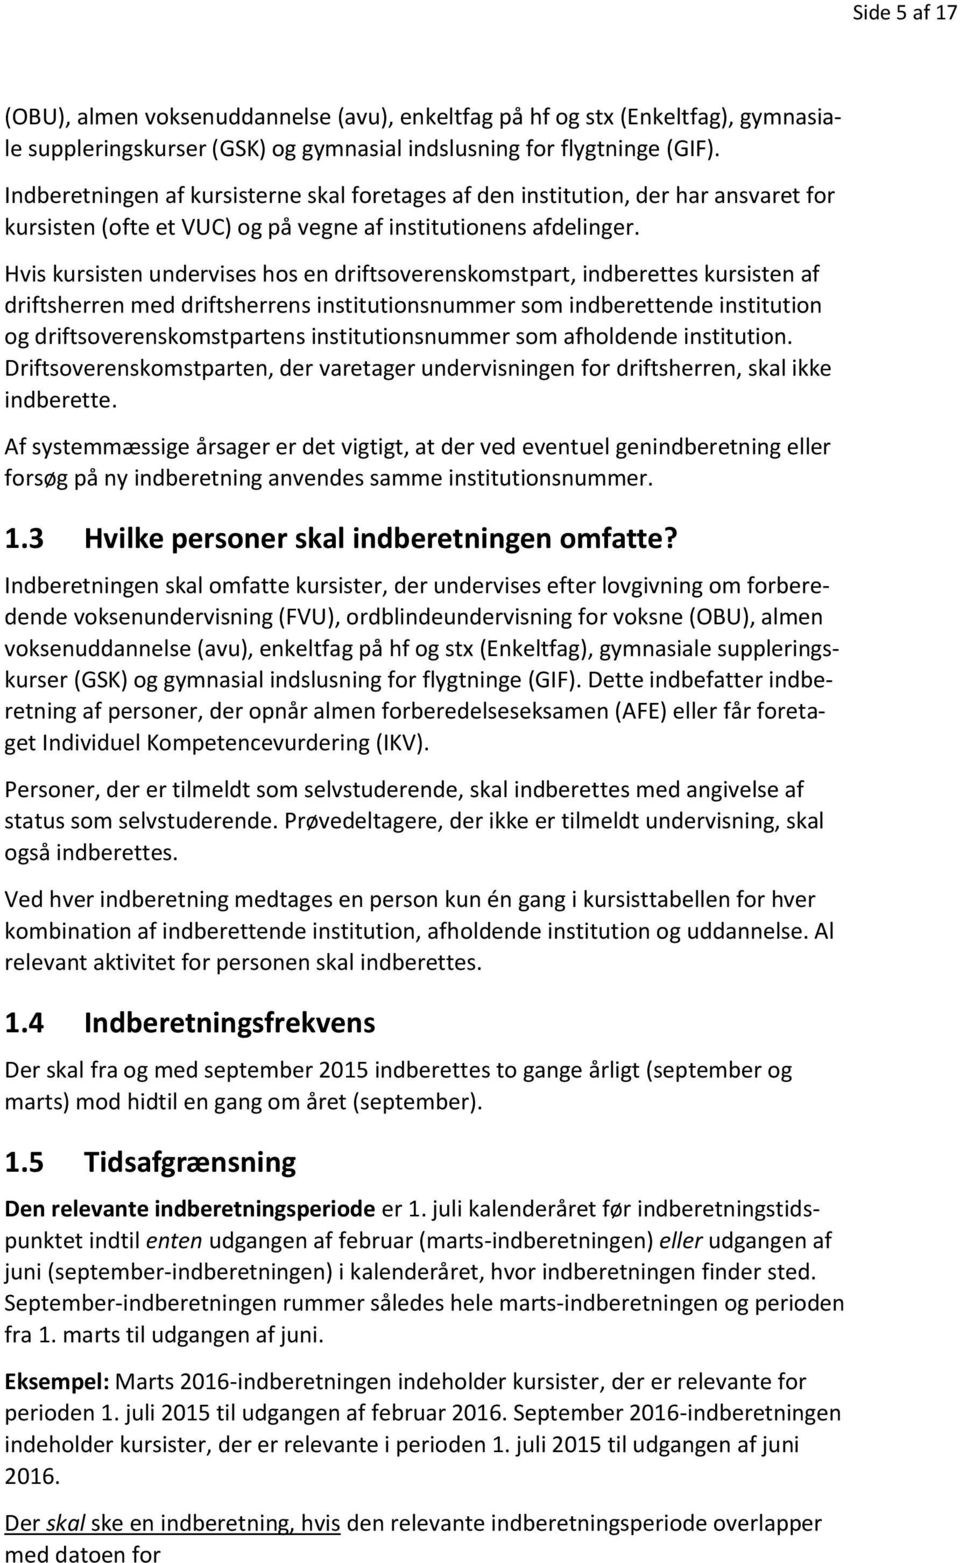 Hvis kursisten undervises hos en driftsoverenskomstpart, indberettes kursisten af driftsherren med driftsherrens institutionsnummer som indberettende institution og driftsoverenskomstpartens